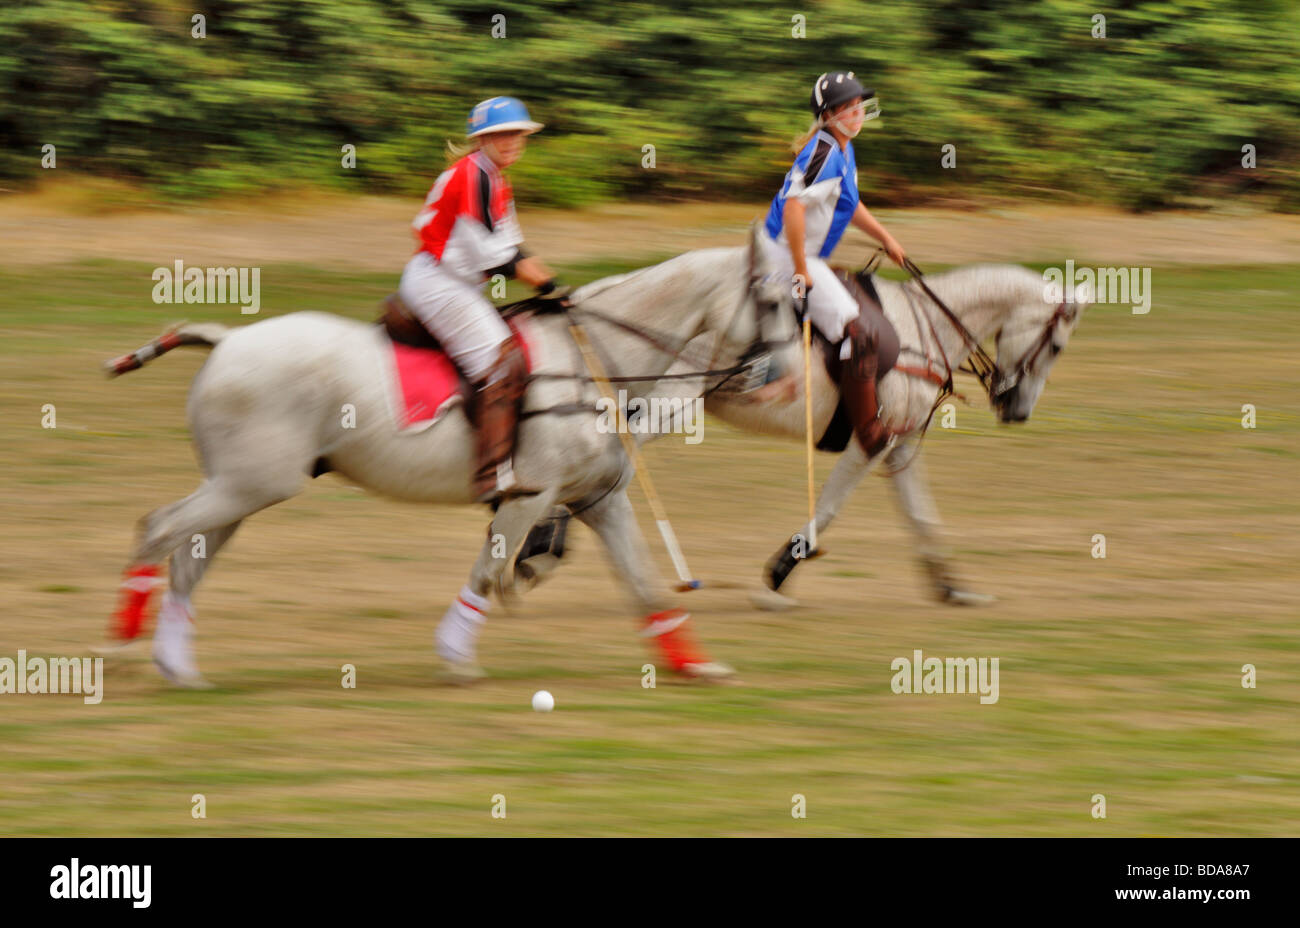 Action during polo match Victoria British Columbia Canada - Stock Image